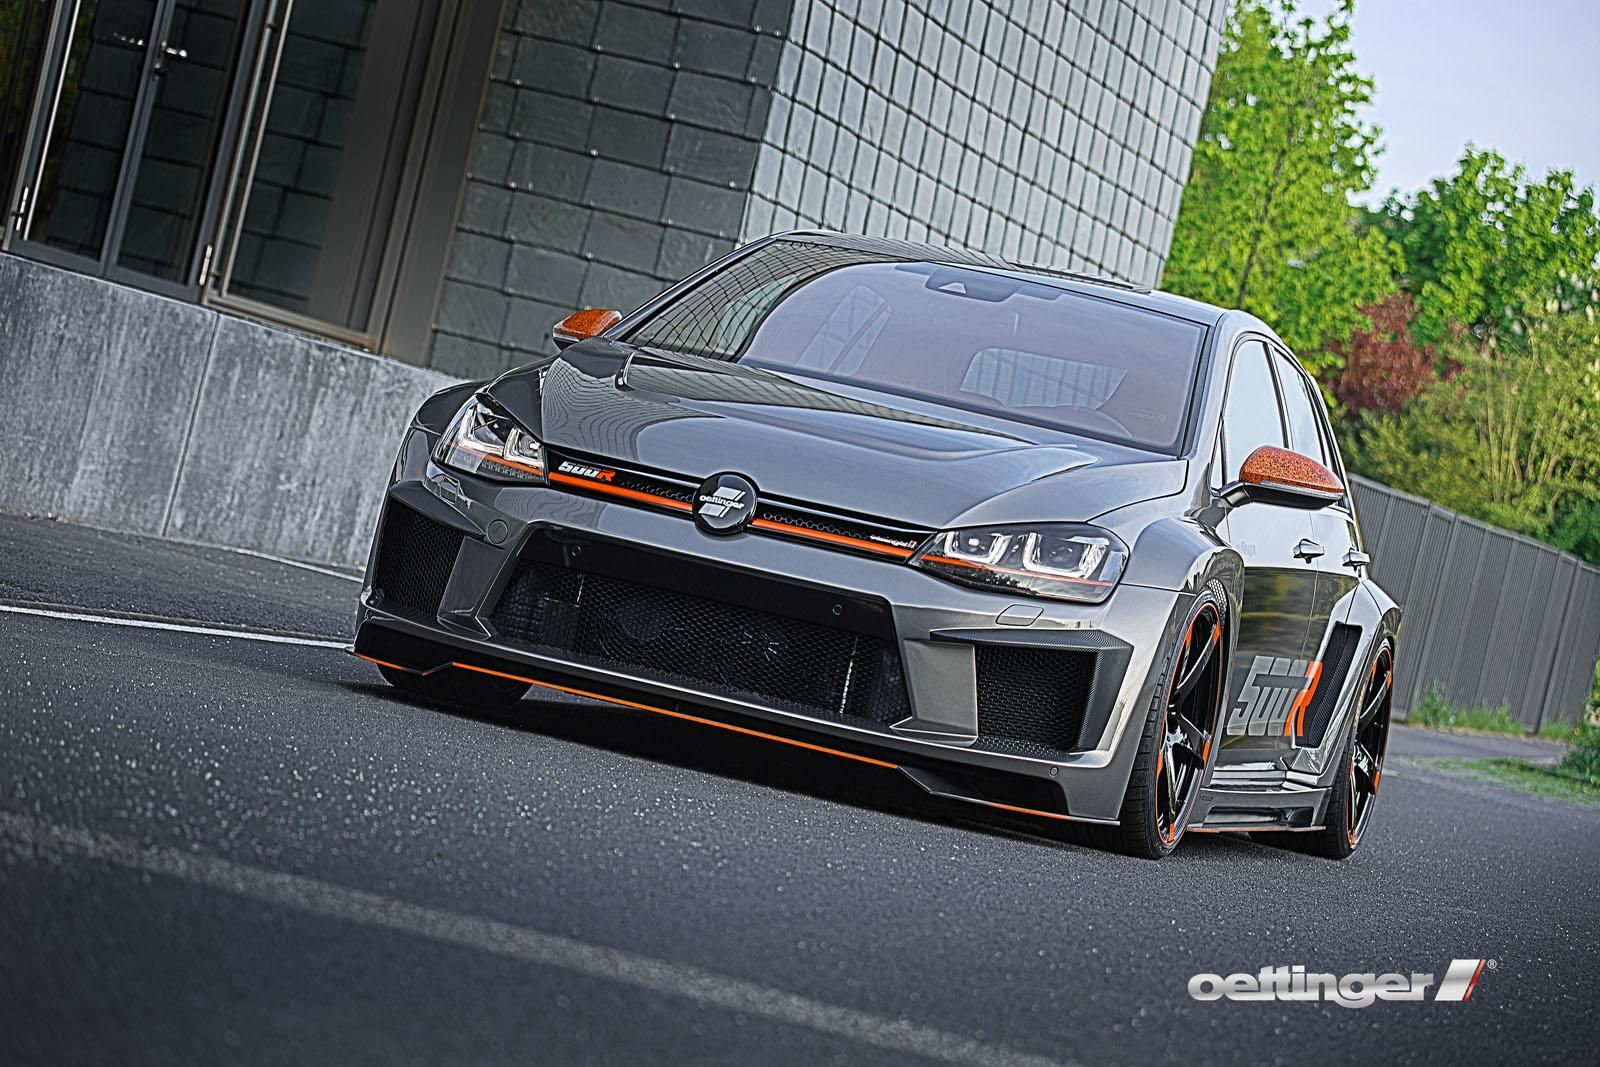 Oettinger 500r Takes Volkswagen Golf R To New Heights Volkswagen Golf R Volkswagen Volkswagen Golf